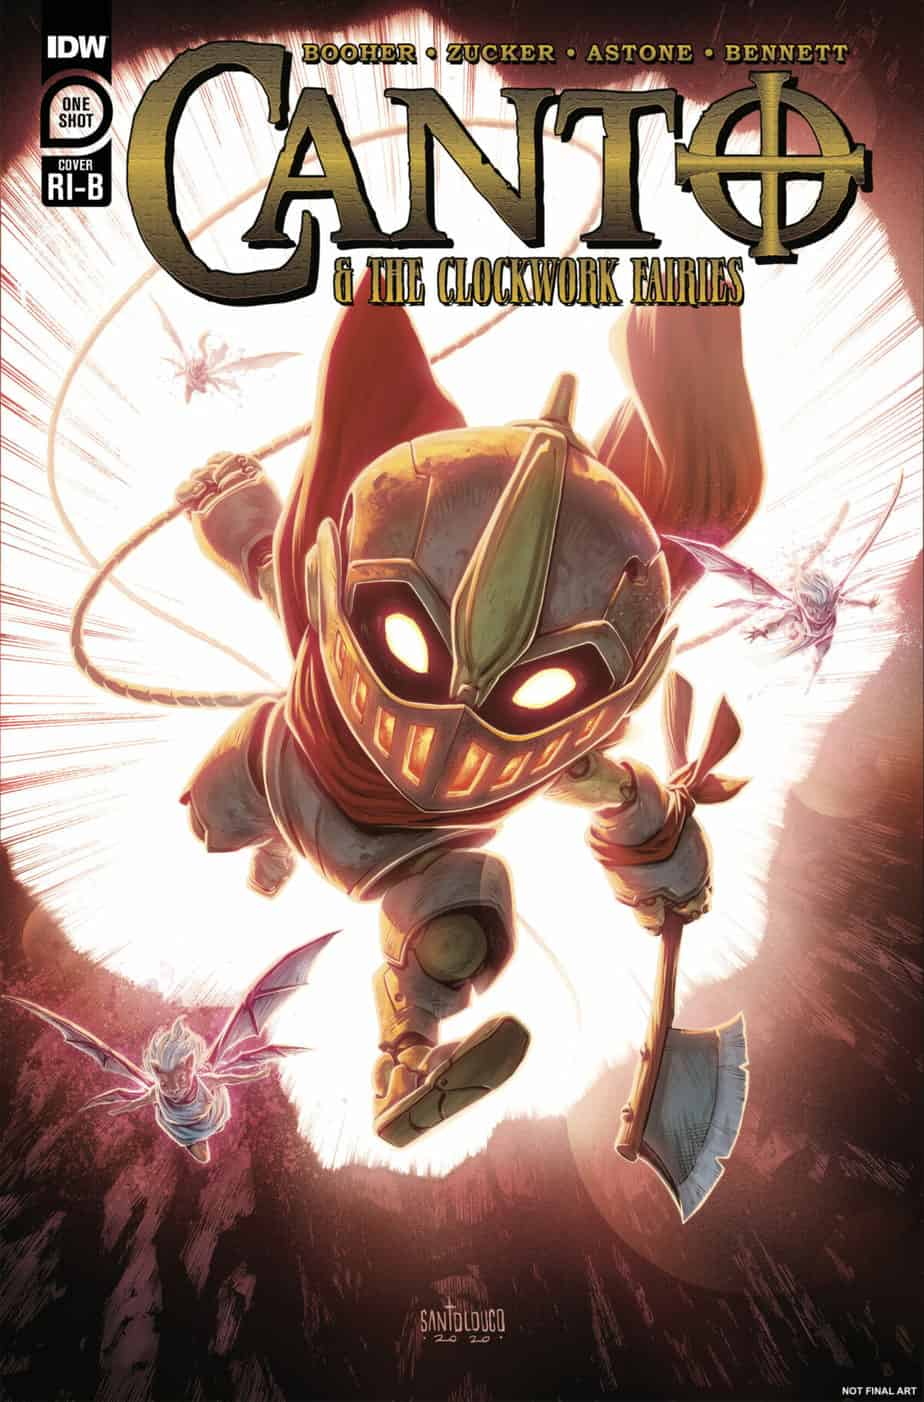 Canto and the Clockwork Fairies #1 - Retailer Incentive B